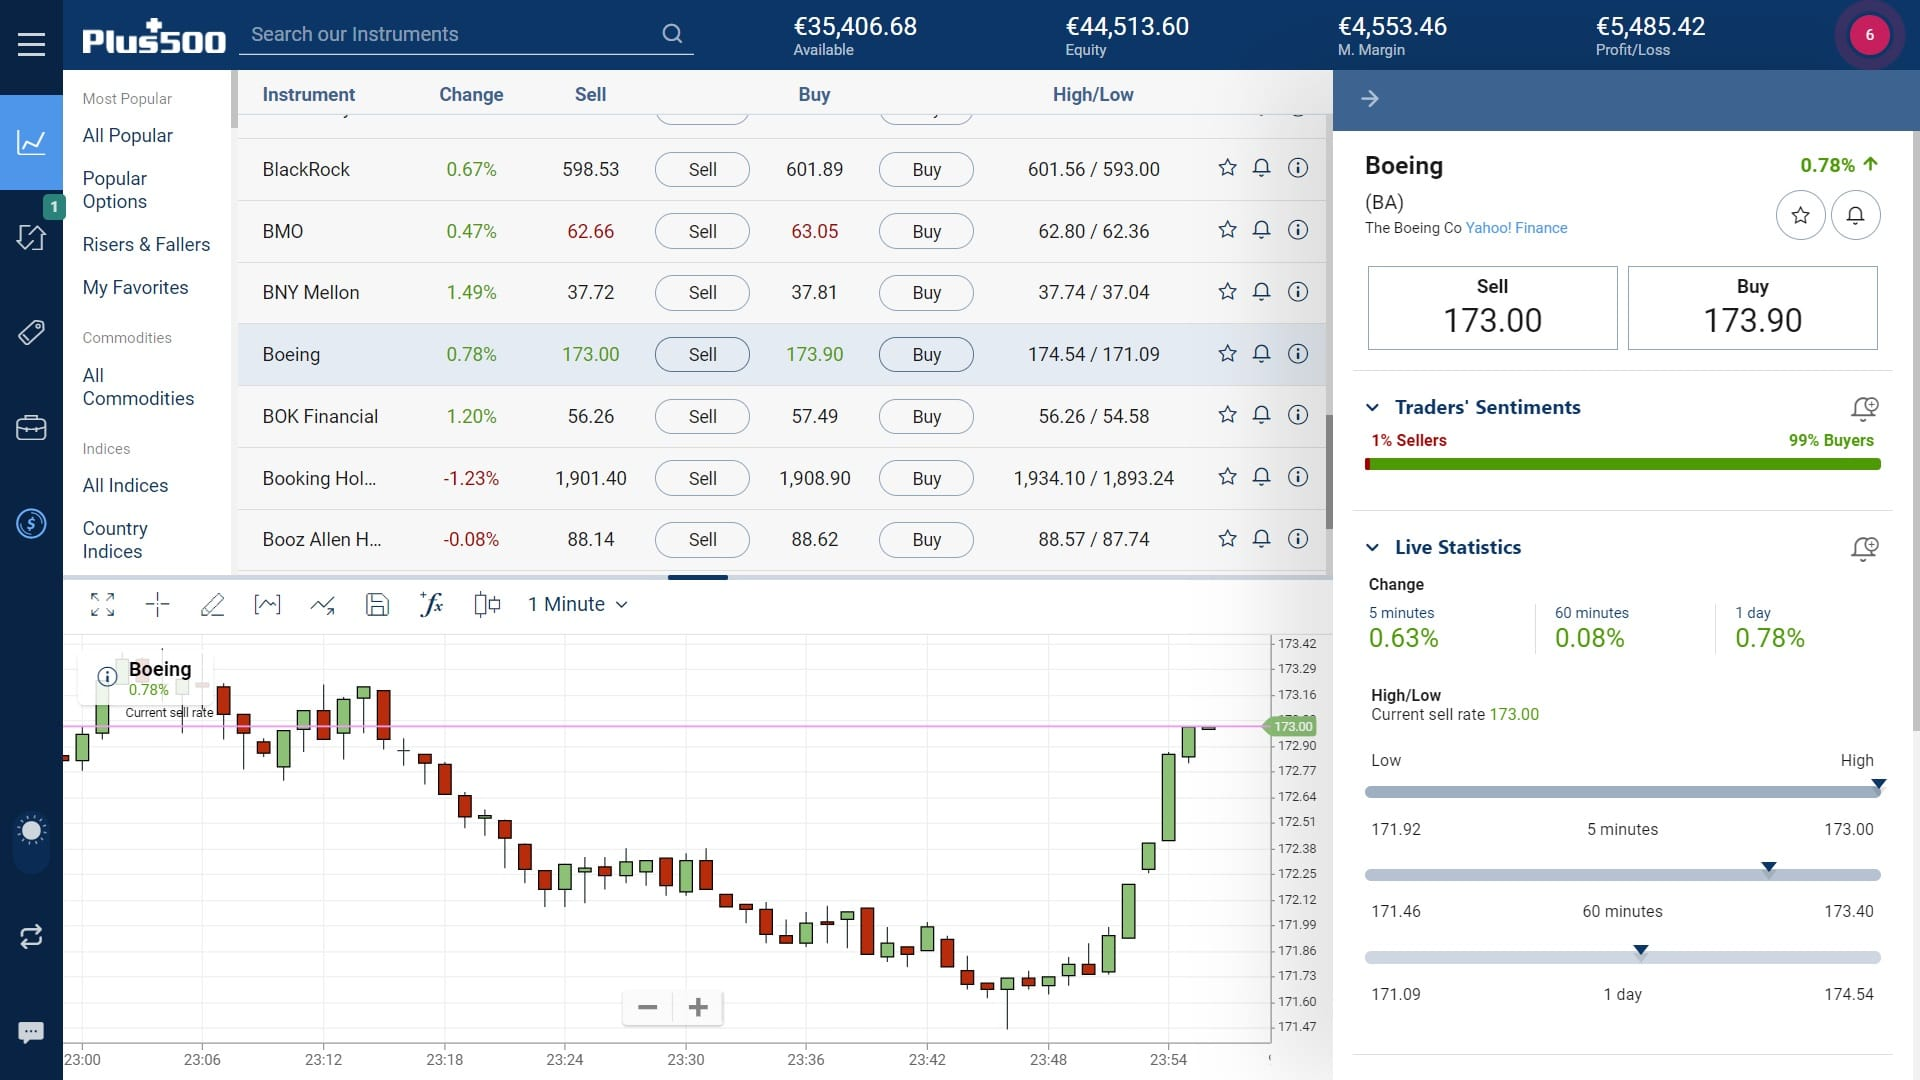 Boeing stock trading on Plus500's WebTrader platform